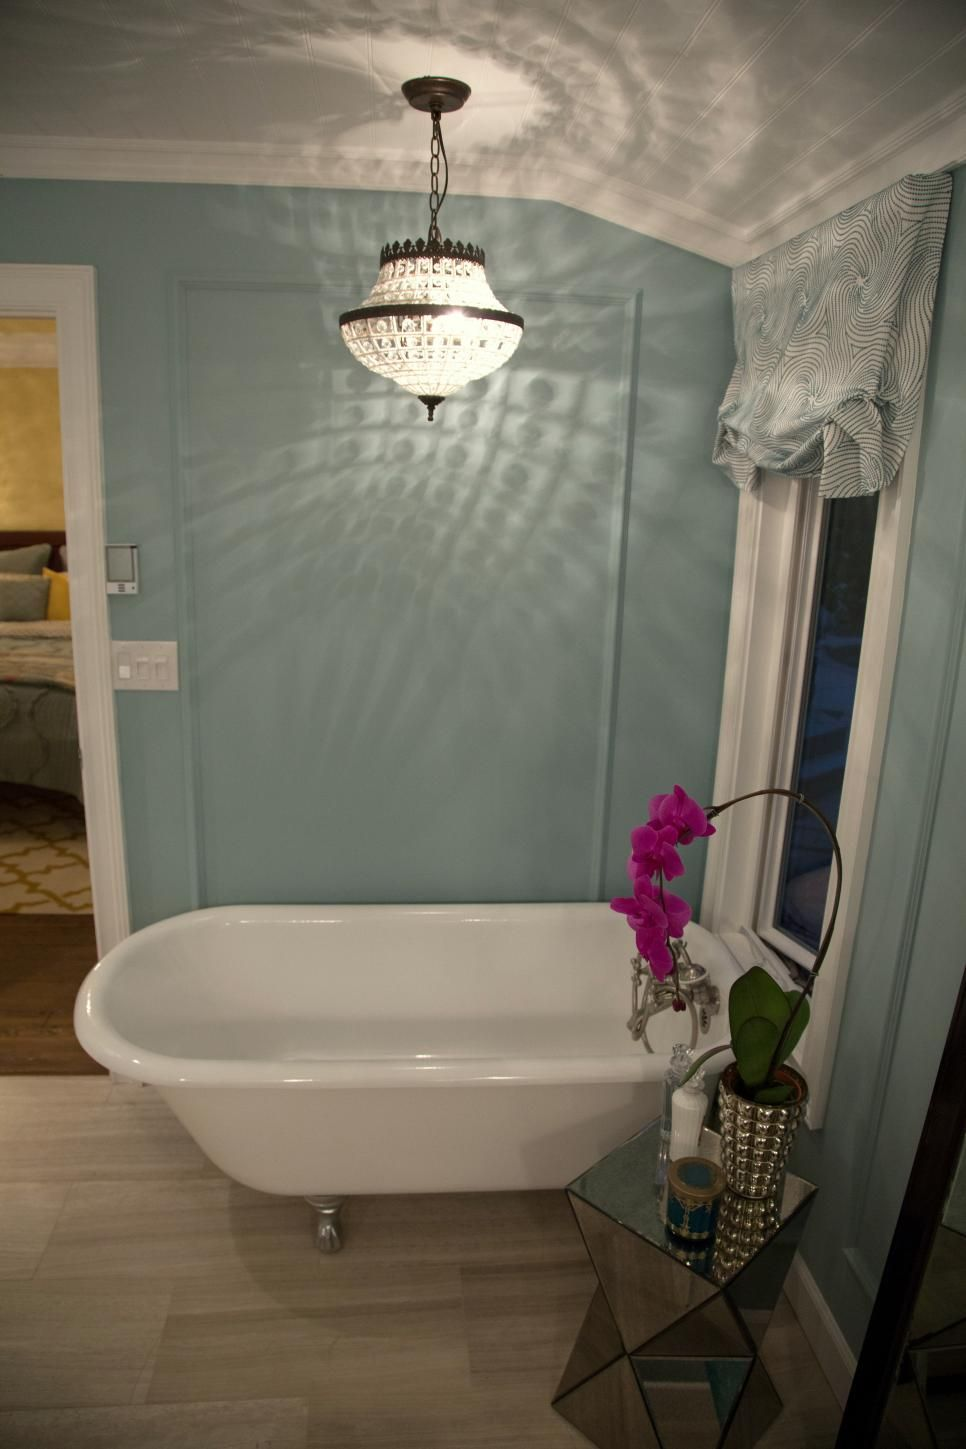 A dazzling chandelier hangs above a clawfoot tub in this light blue